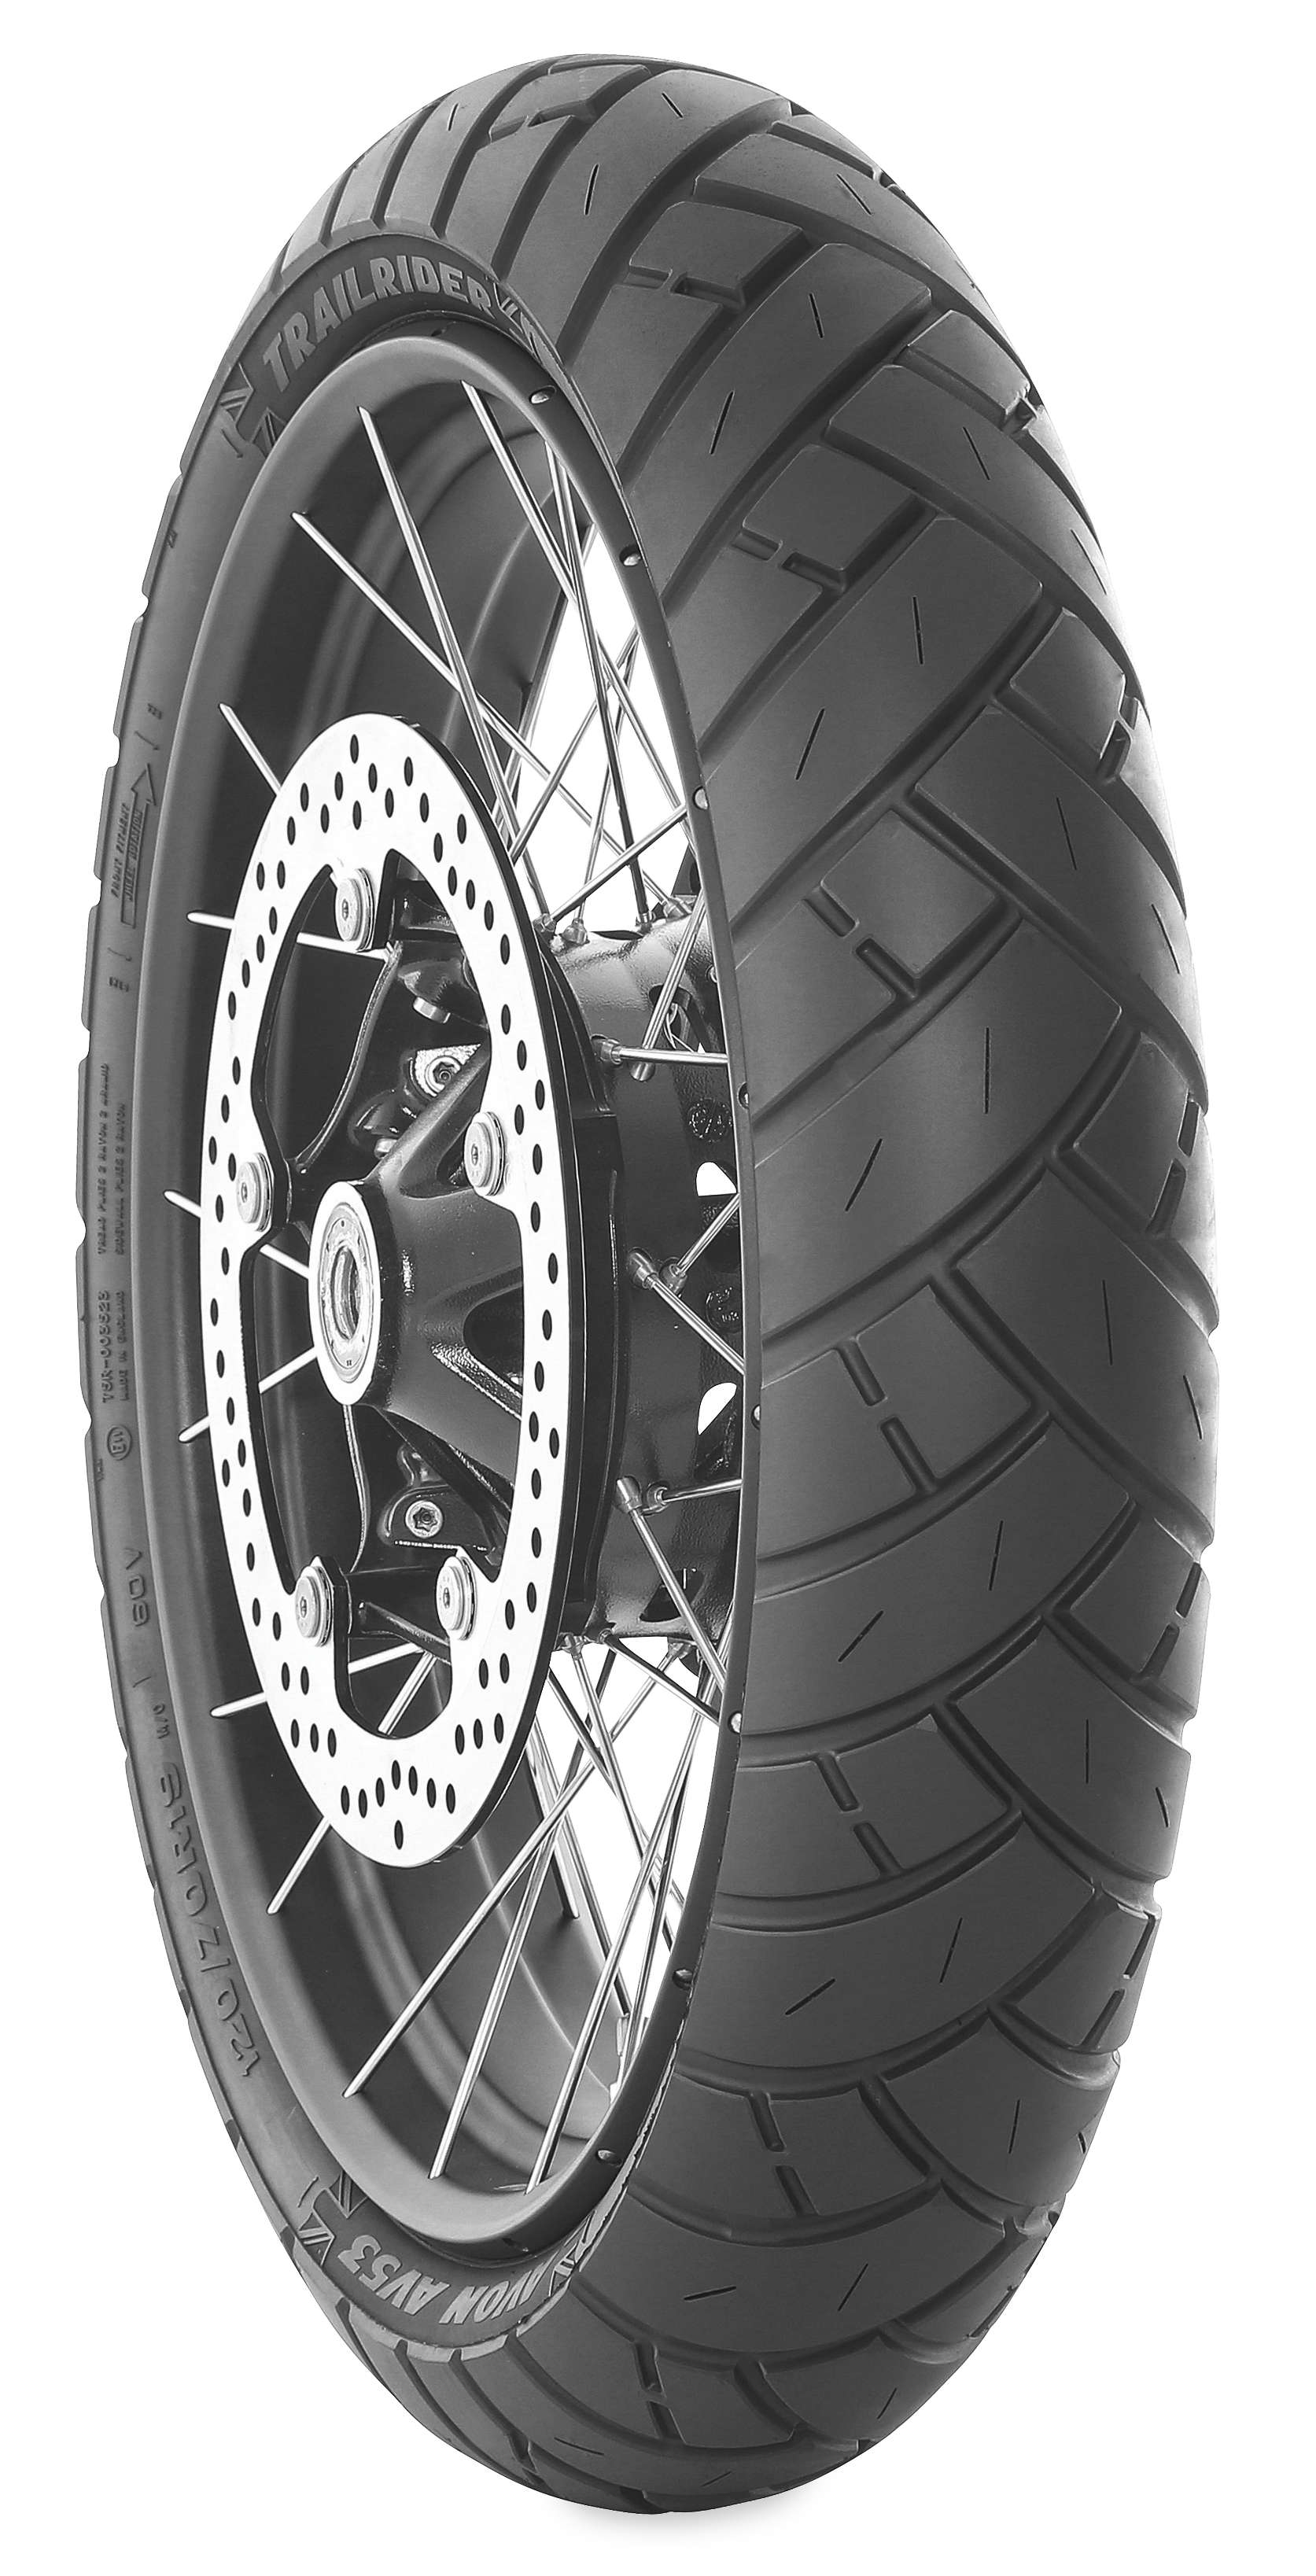 TrailRider Dual Sport Tires